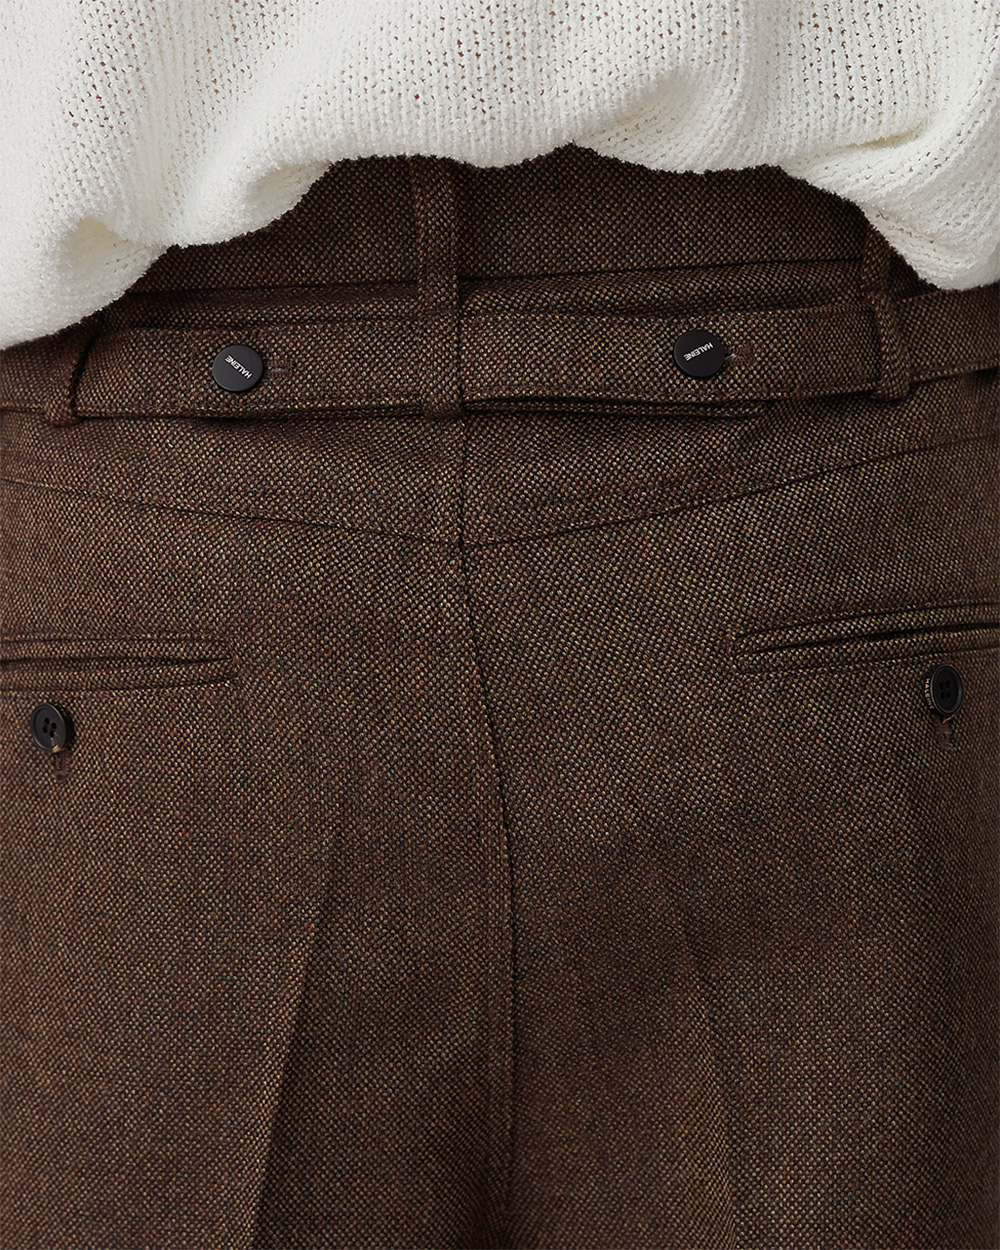 HALEINE알렌느 BROWN backside belt 3D detail tweed wool pants(NB003)**4/2일 배송**